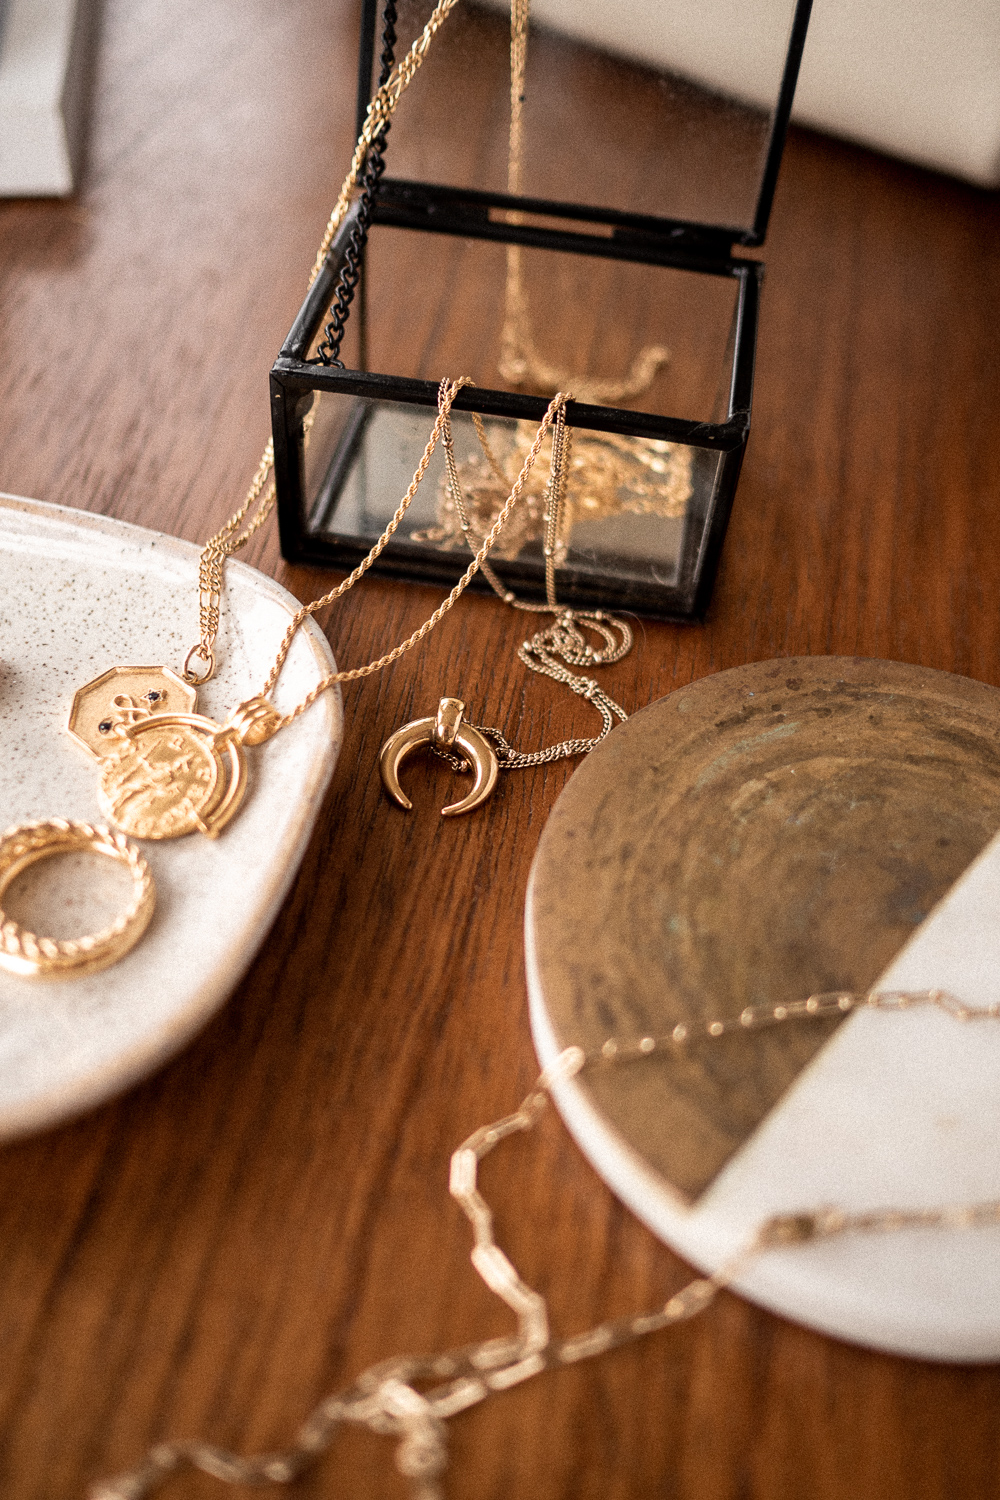 A close-up of gold necklaces, both pendant and chain, in my capsule jewelry collection